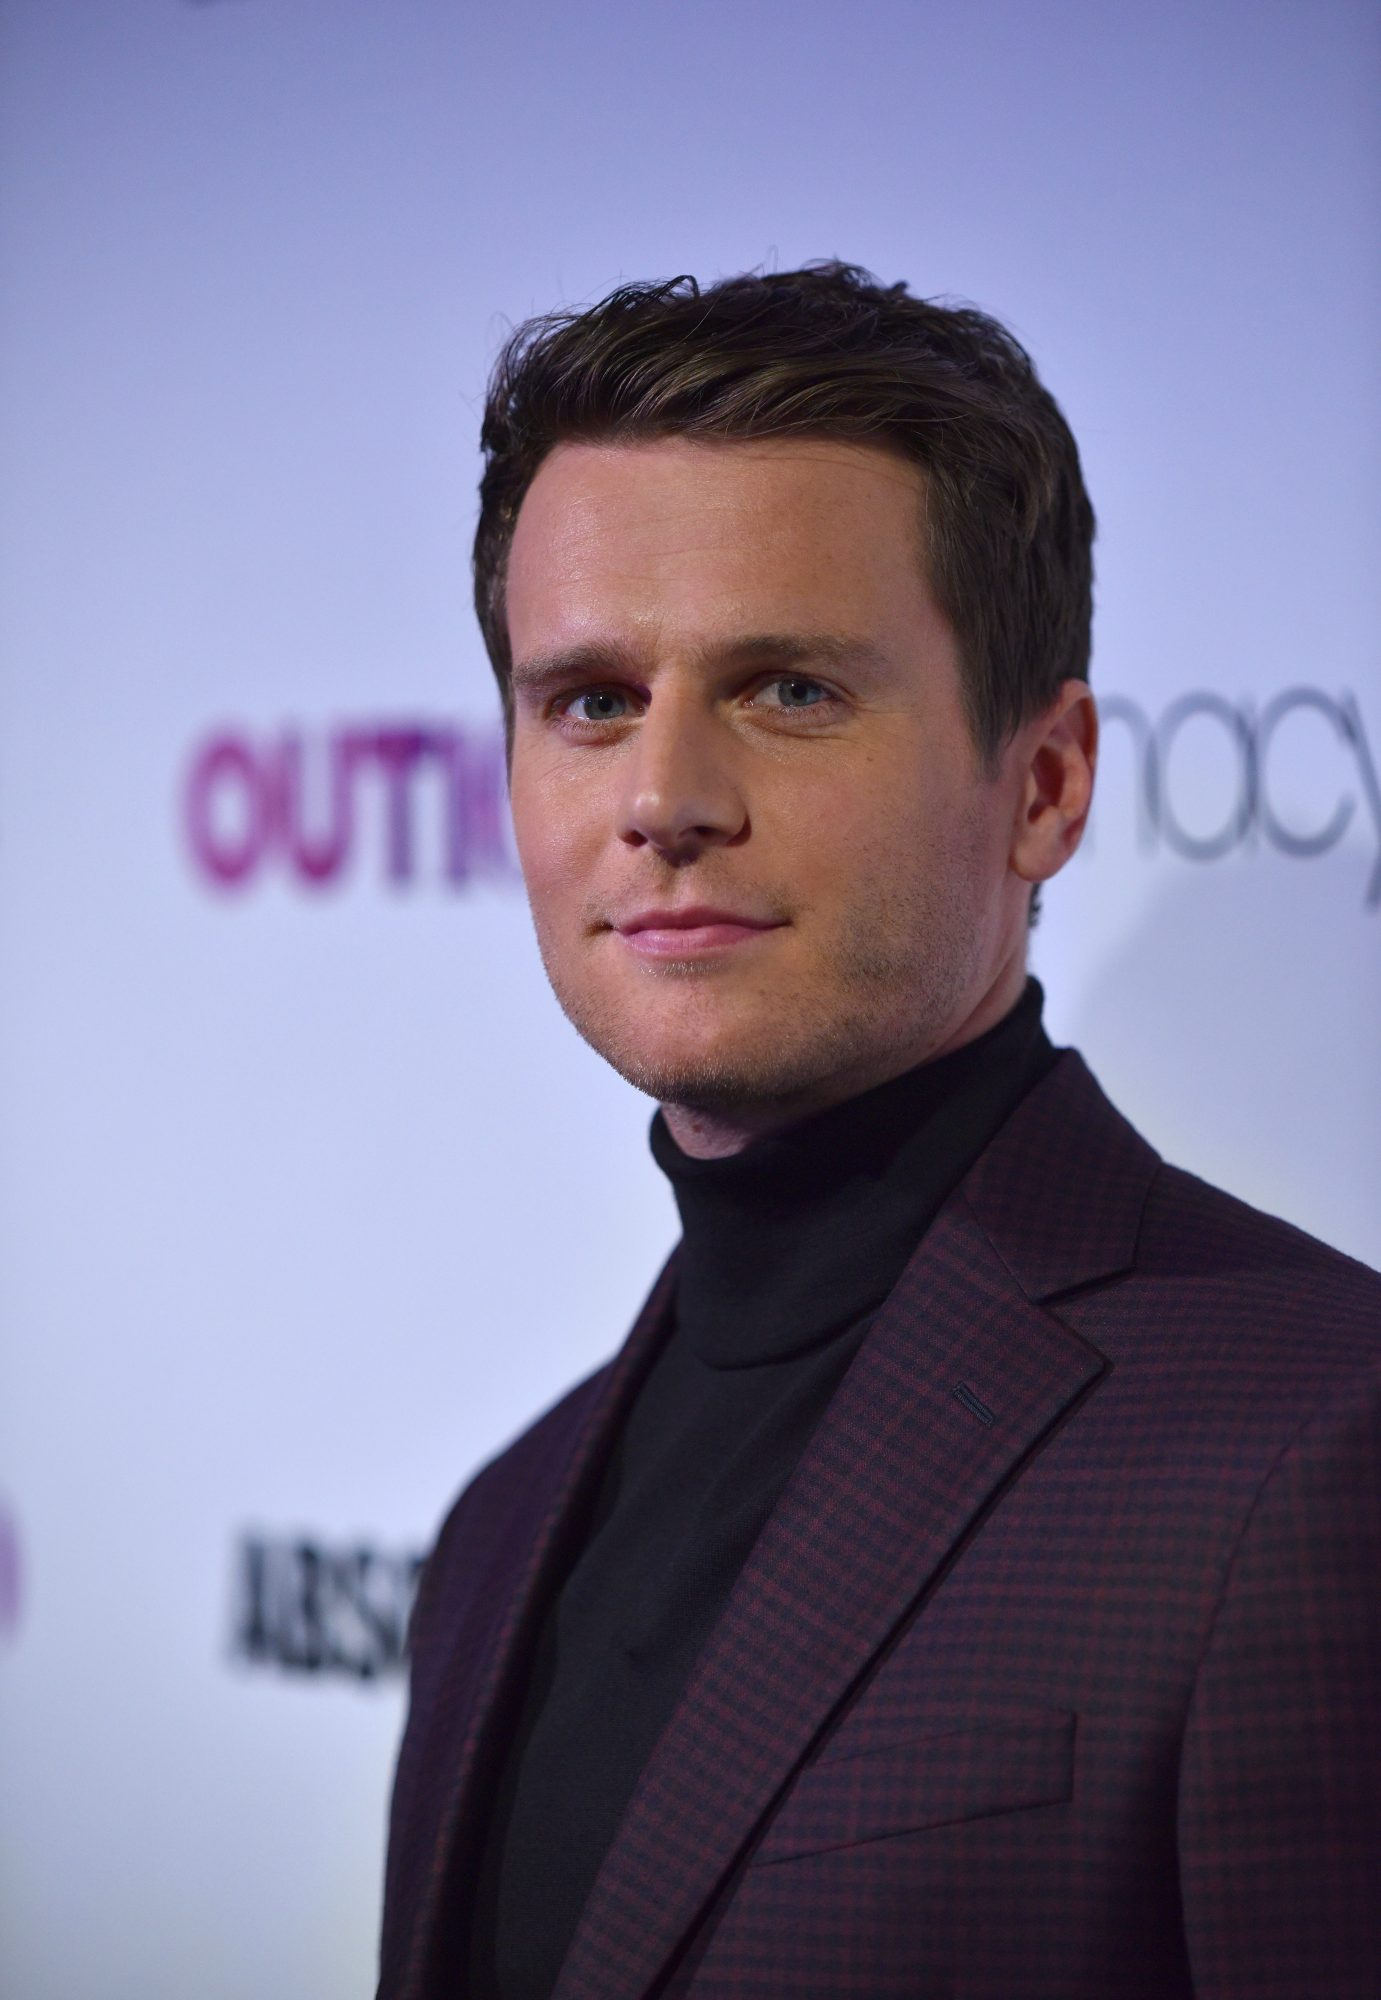 NEW YORK, NY - NOVEMBER 09:  OUT100 Entertainer of the Year Jonathan Groff attends OUT Magazine #OUT100 Event presented by Lexus at the the Altman Building on November 9, 2017 in New York City.  (Photo by Bryan Bedder/Getty Images for OUT Magazine)